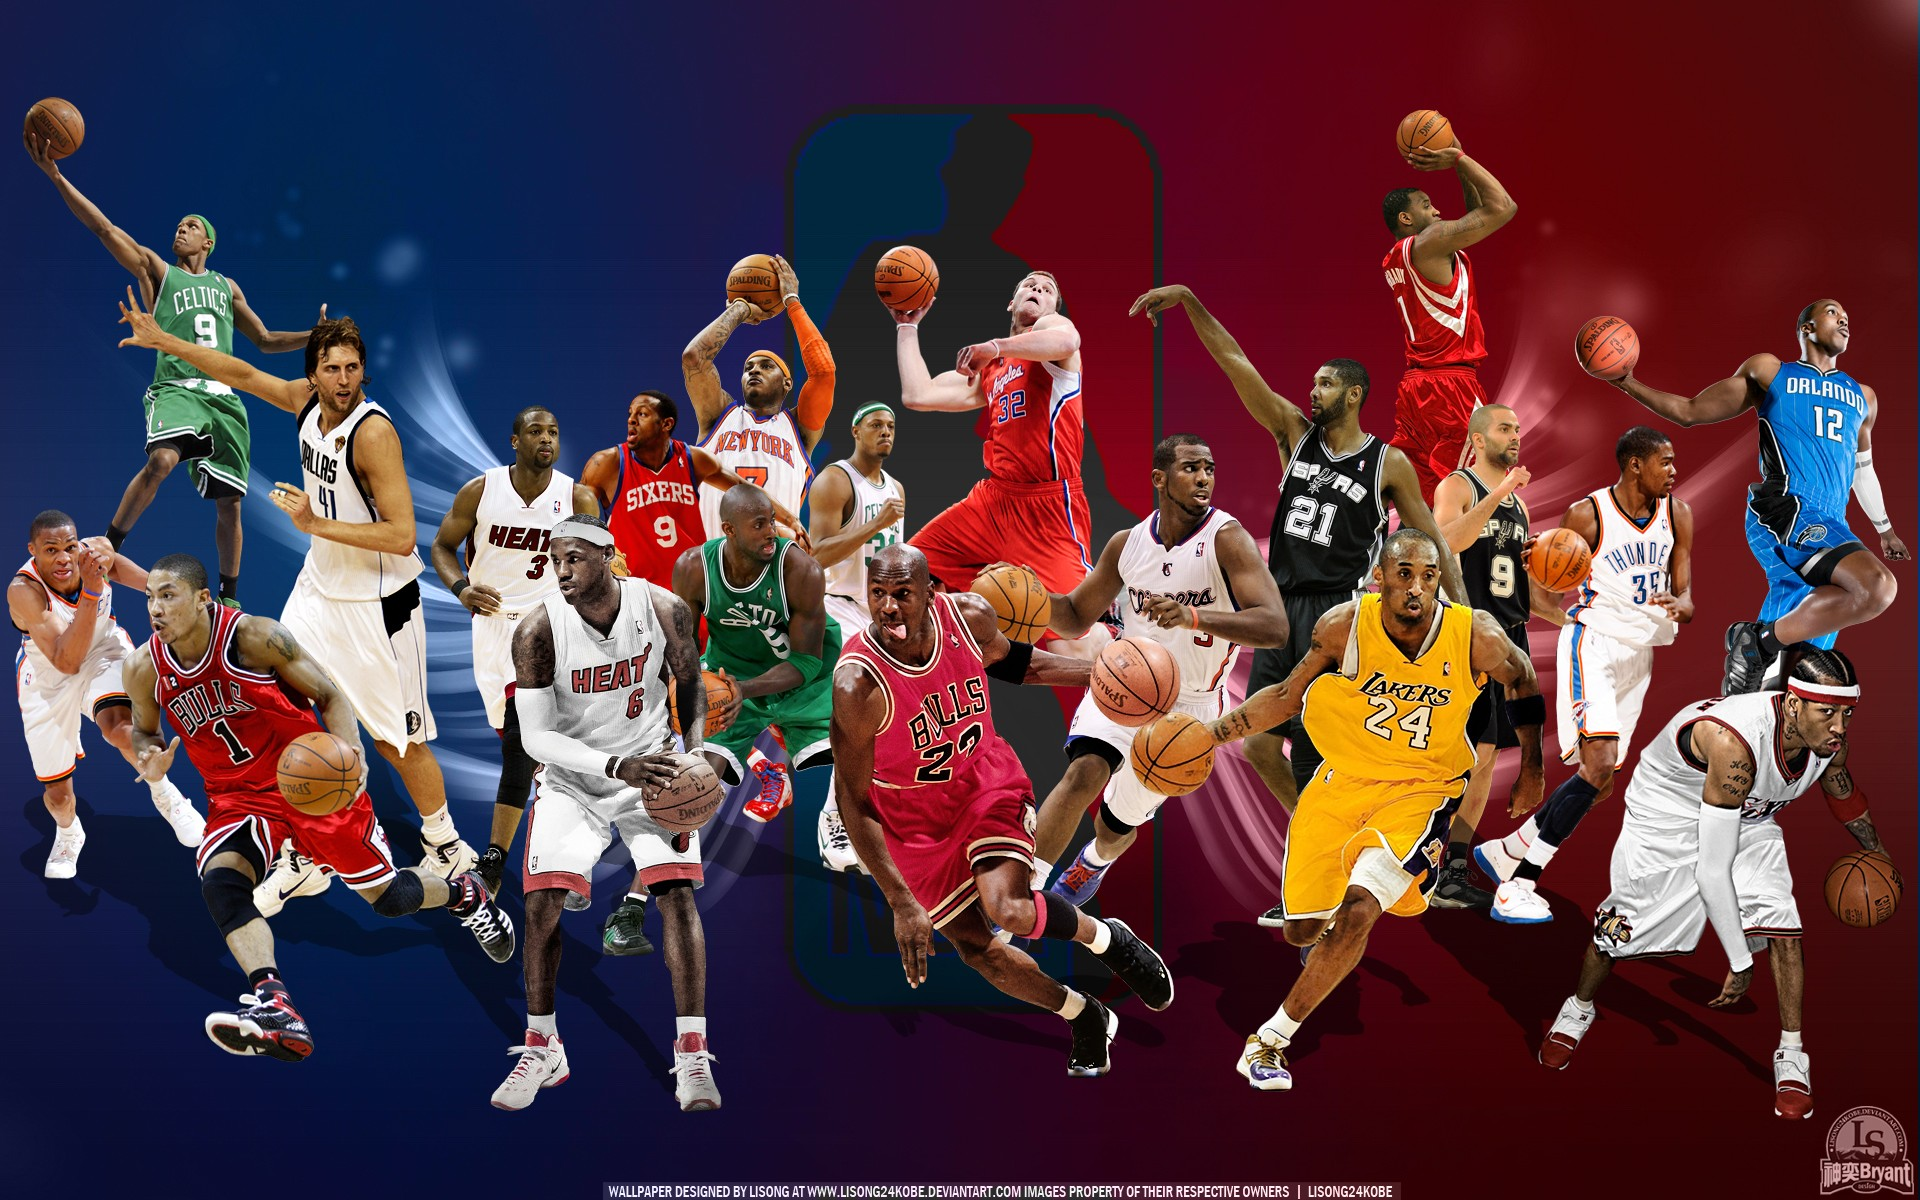 Sports Wallpaper Apps Iphone: 50+ Nba Wallpapers ·① Download Free HD Backgrounds For